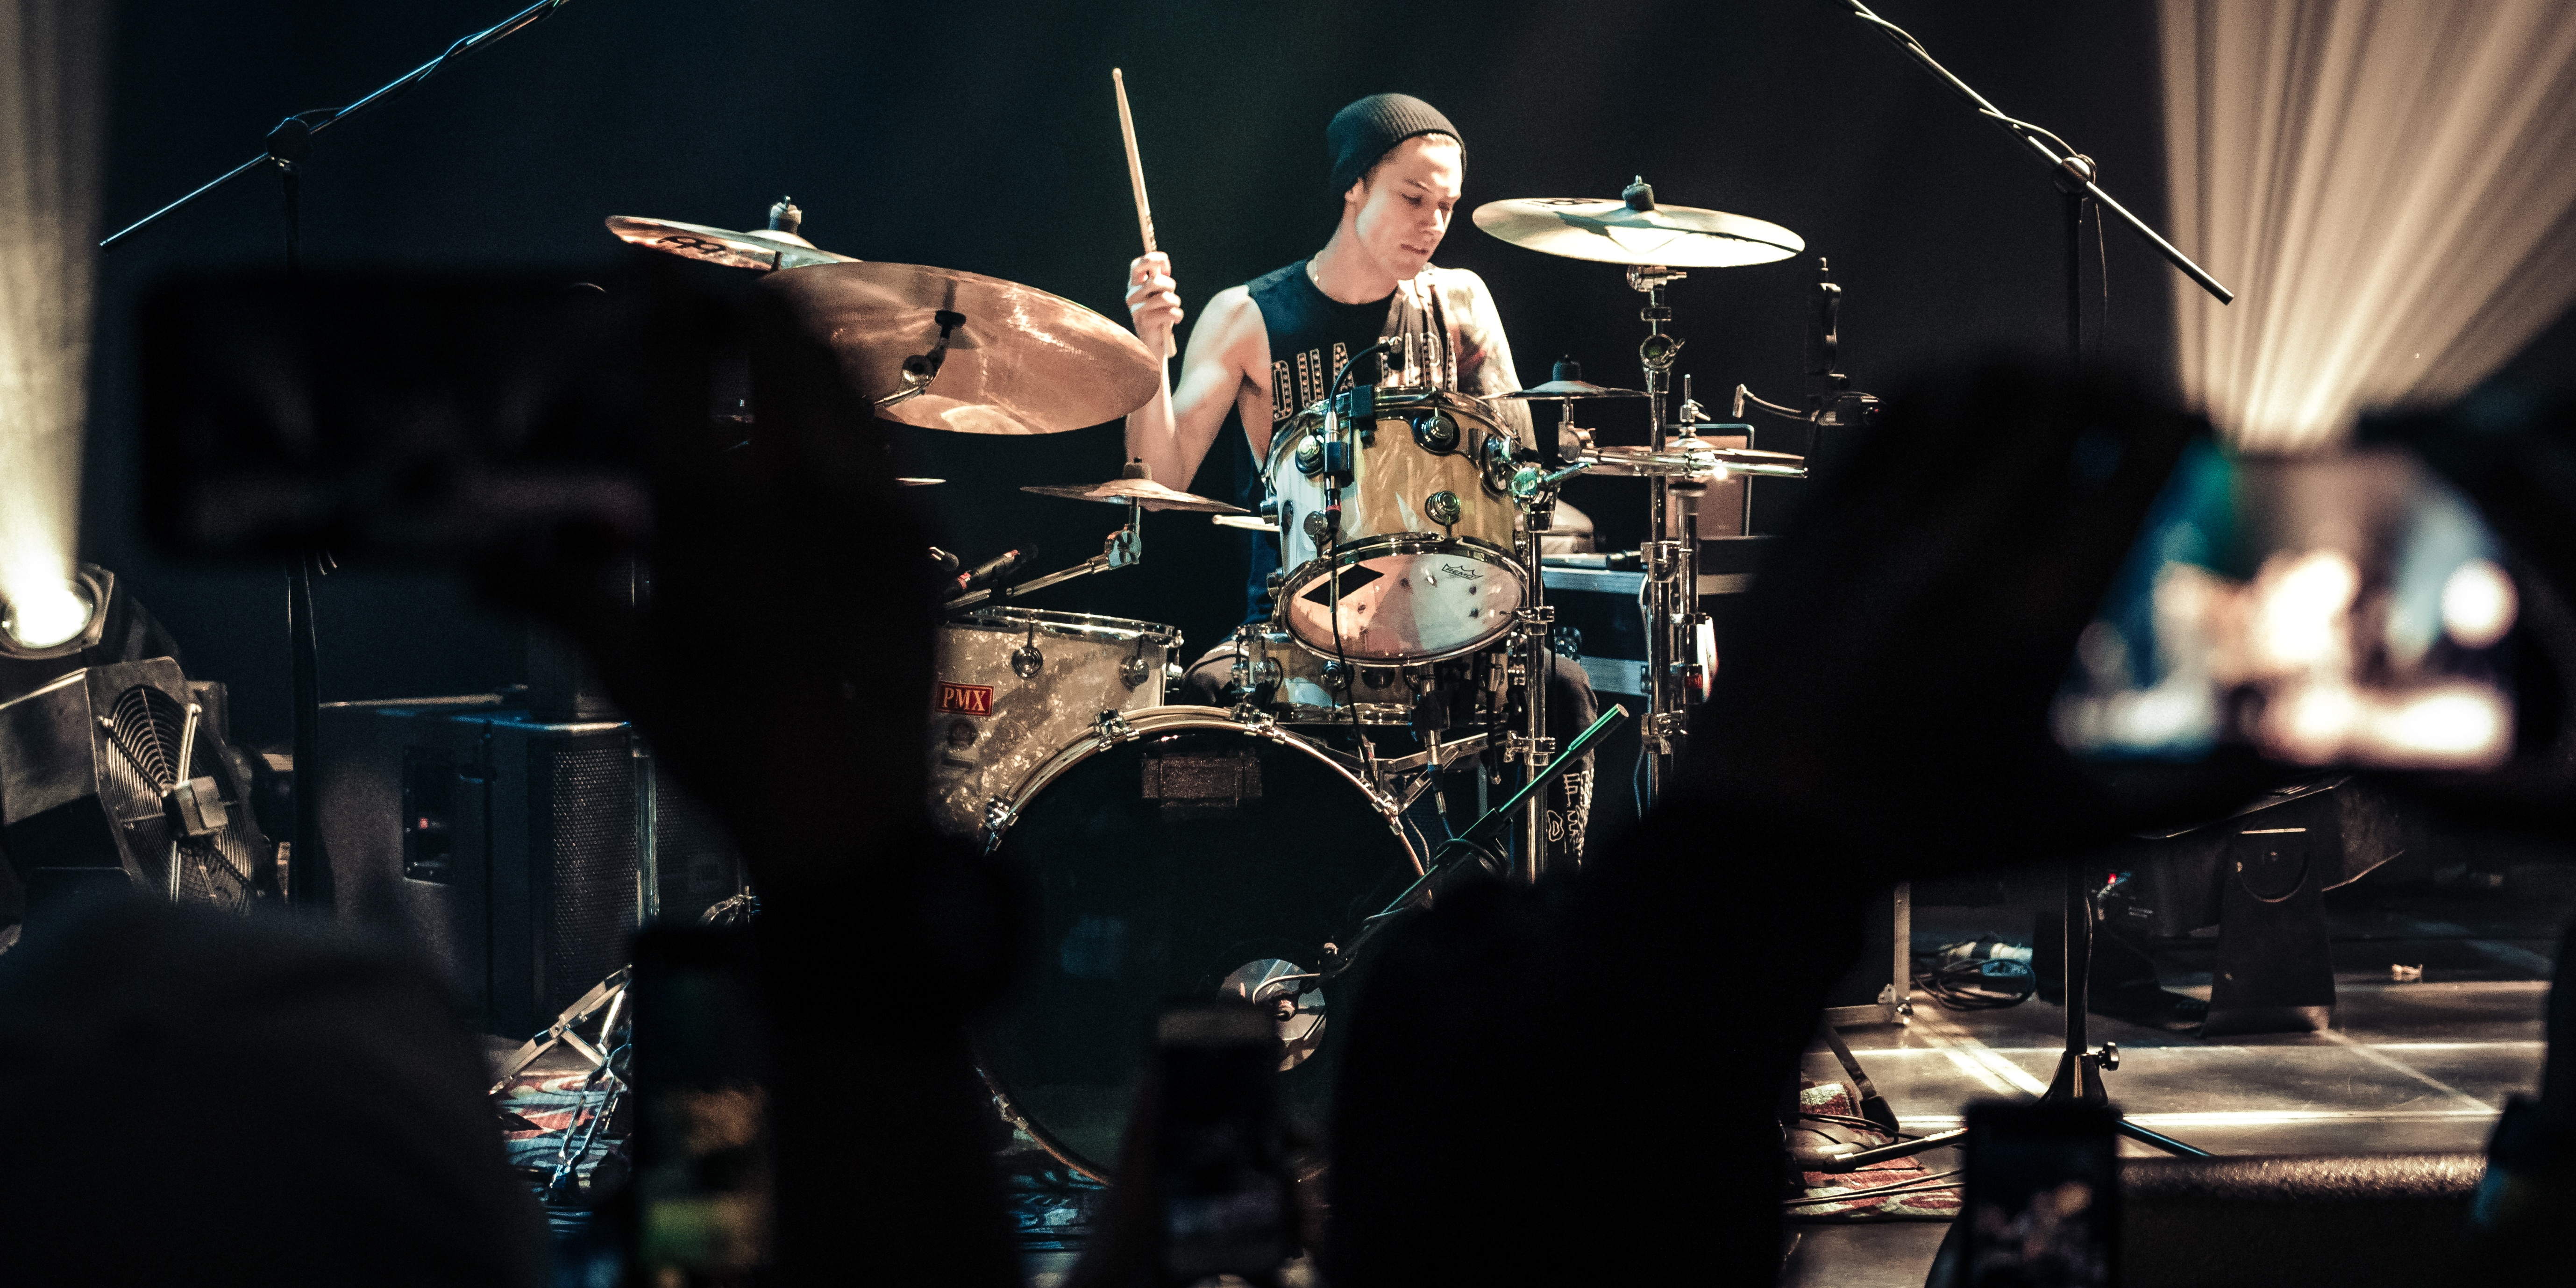 Luke Holland ensnares the hearts of the attendees of his breakbeat Manila show – photo gallery